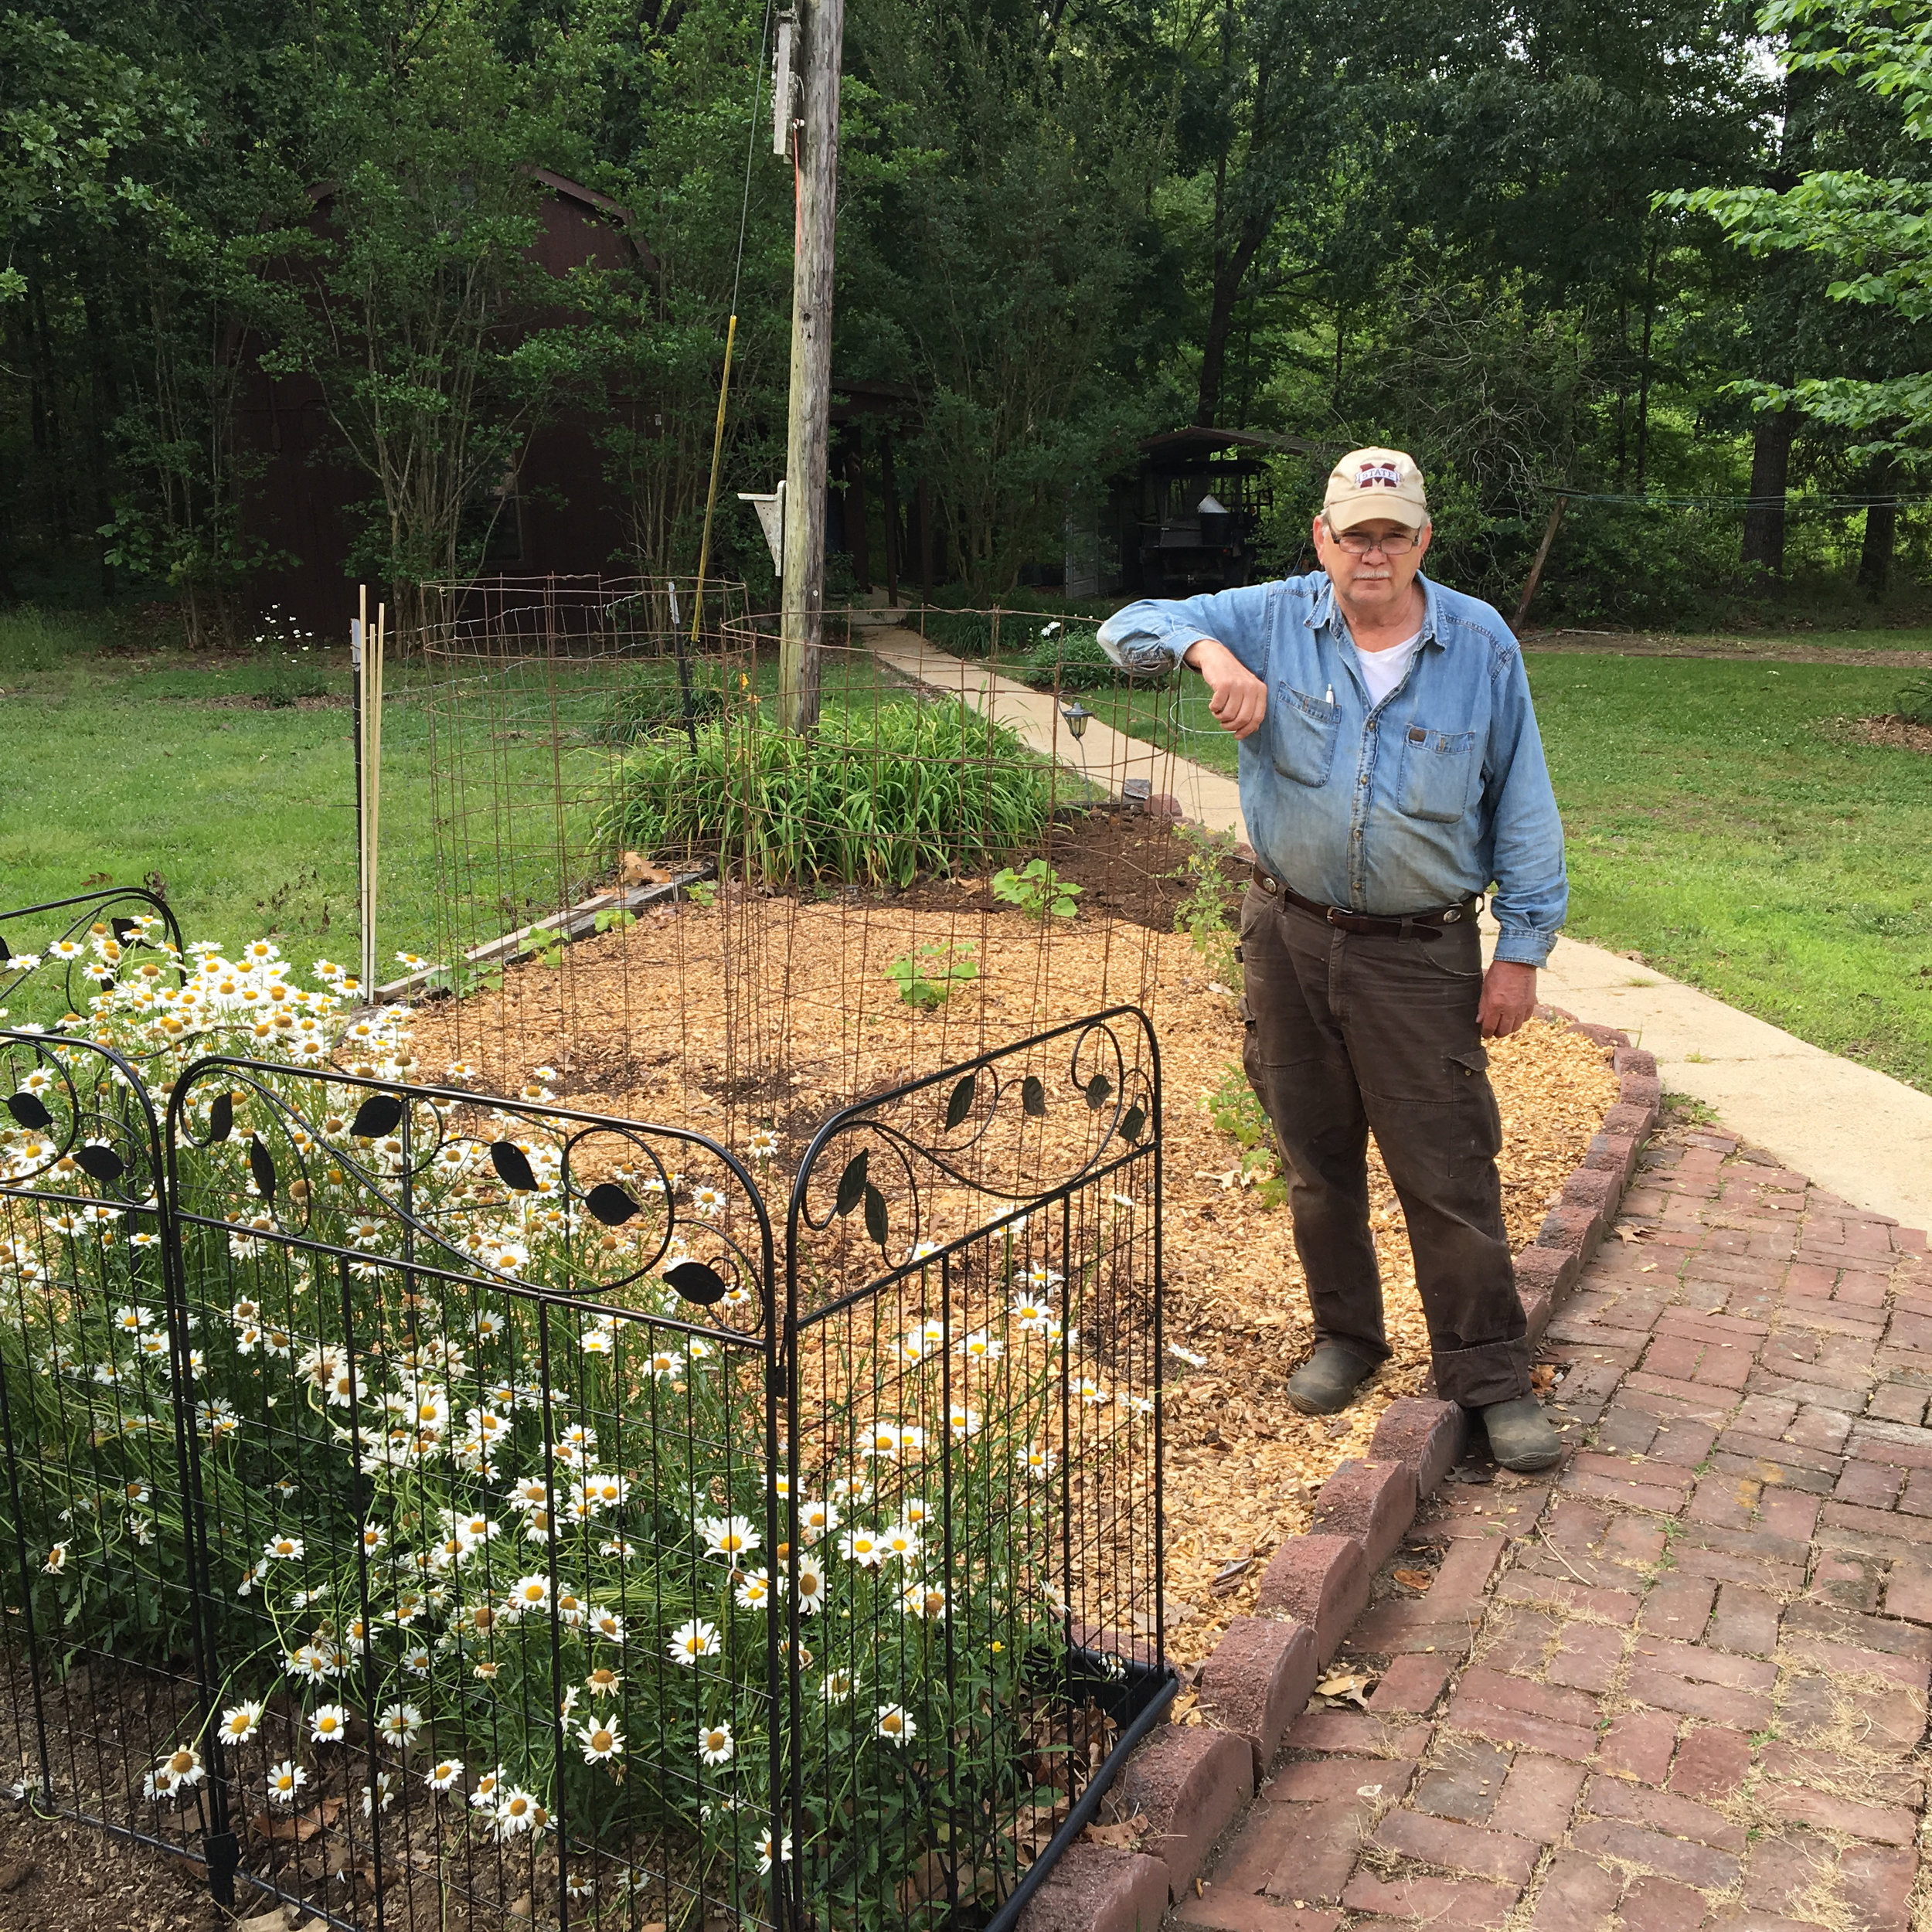 John Simmons poses in his garden after planting the 'Grandma George' bean that Seed Savers Exchange repatriated to him this spring.